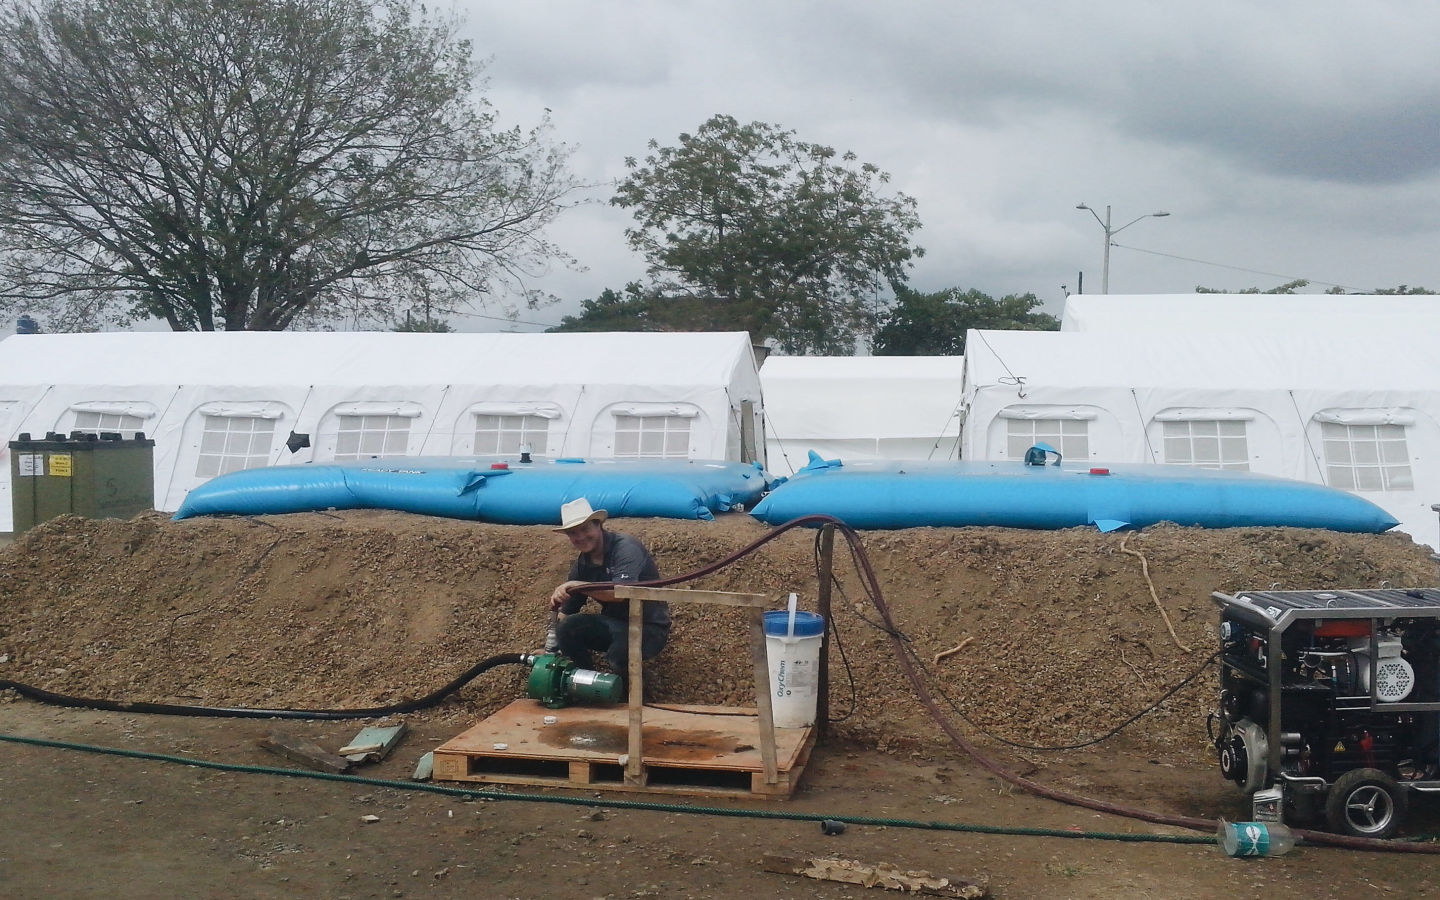 Water Mission engineer Bert Morrison with water equipment at Ecuador field hospital